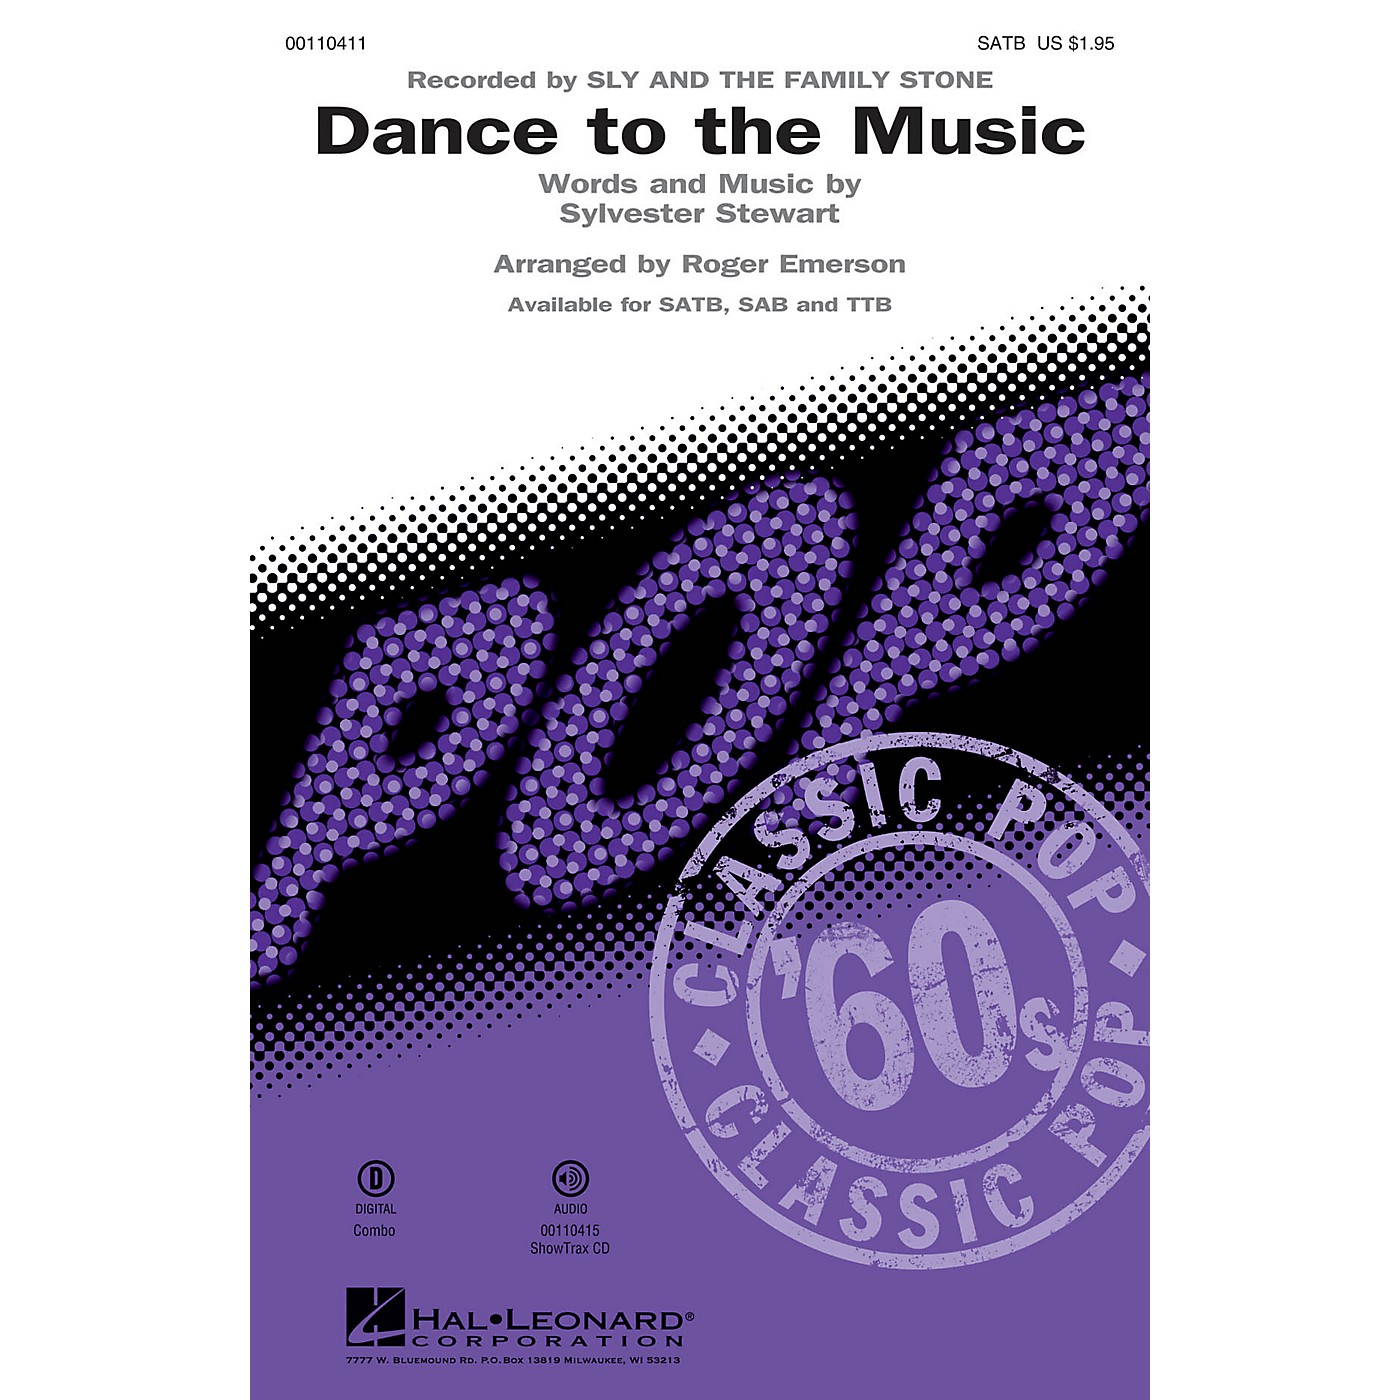 Hal Leonard Dance to the Music (SATB) SATB by Sly and the Family Stone arranged by Roger Emerson thumbnail